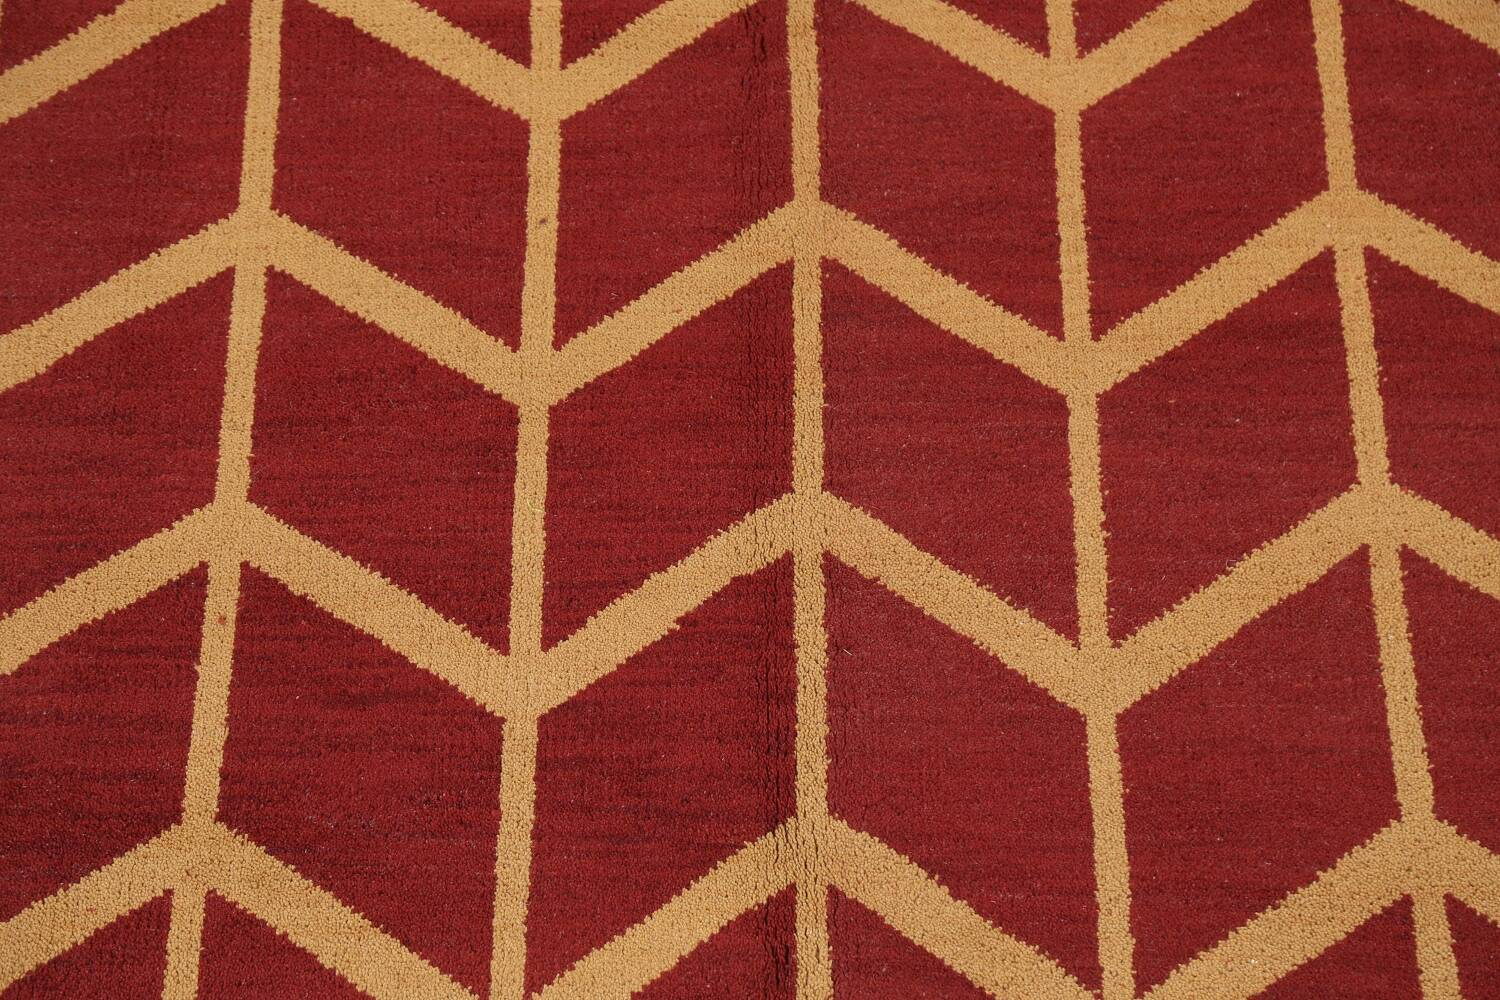 All-Over Moroccan Wool Area Rug 8x10 image 4